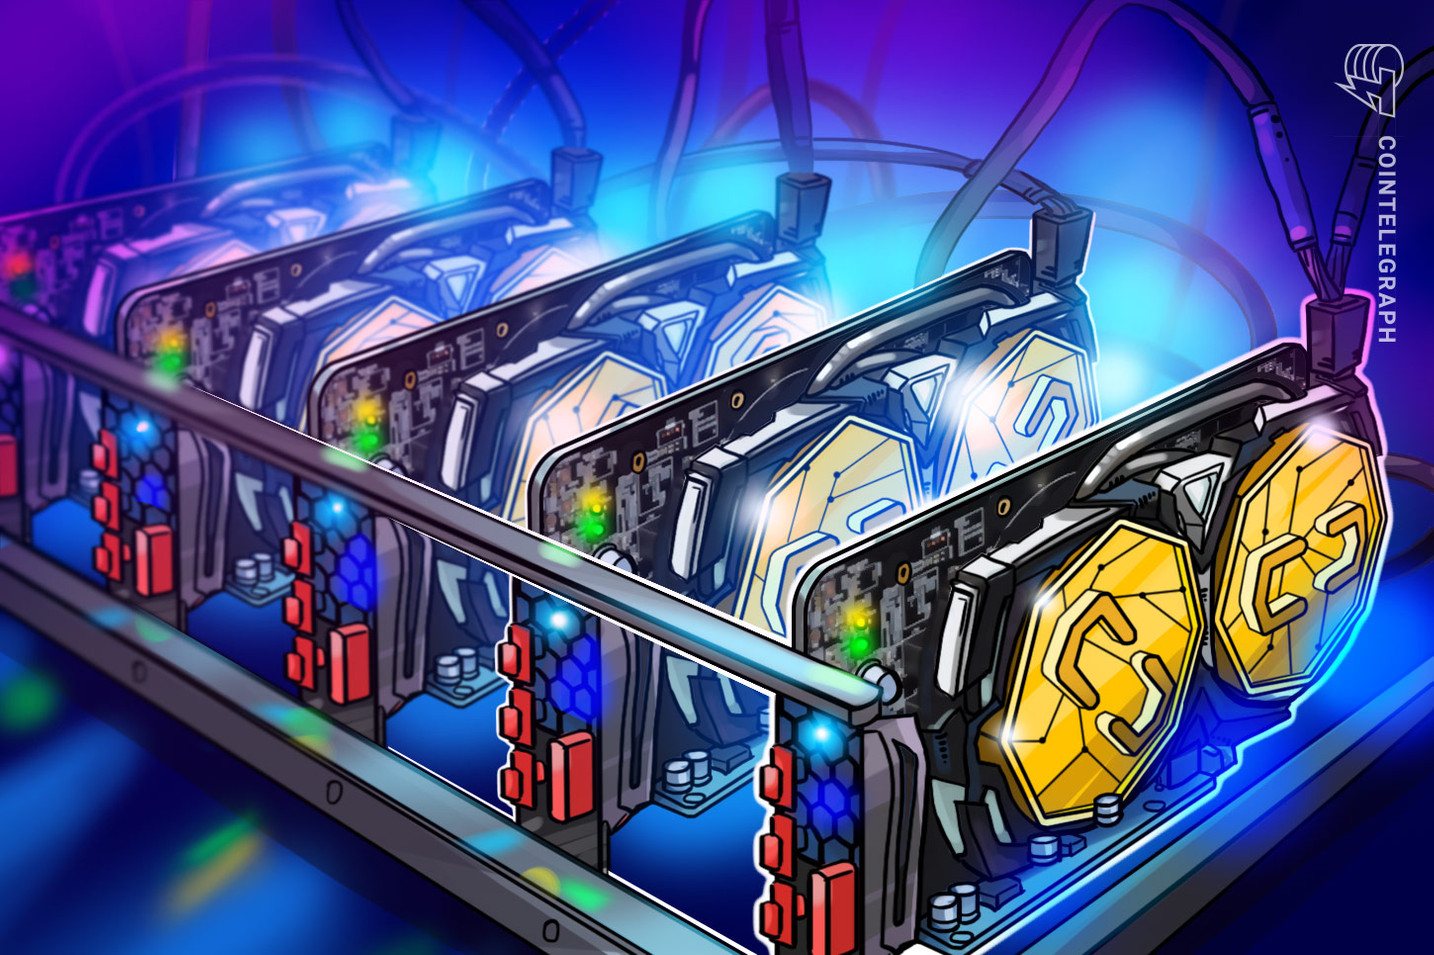 'Exclusive mining' could have negative implications for the Blockchain industry, say experts